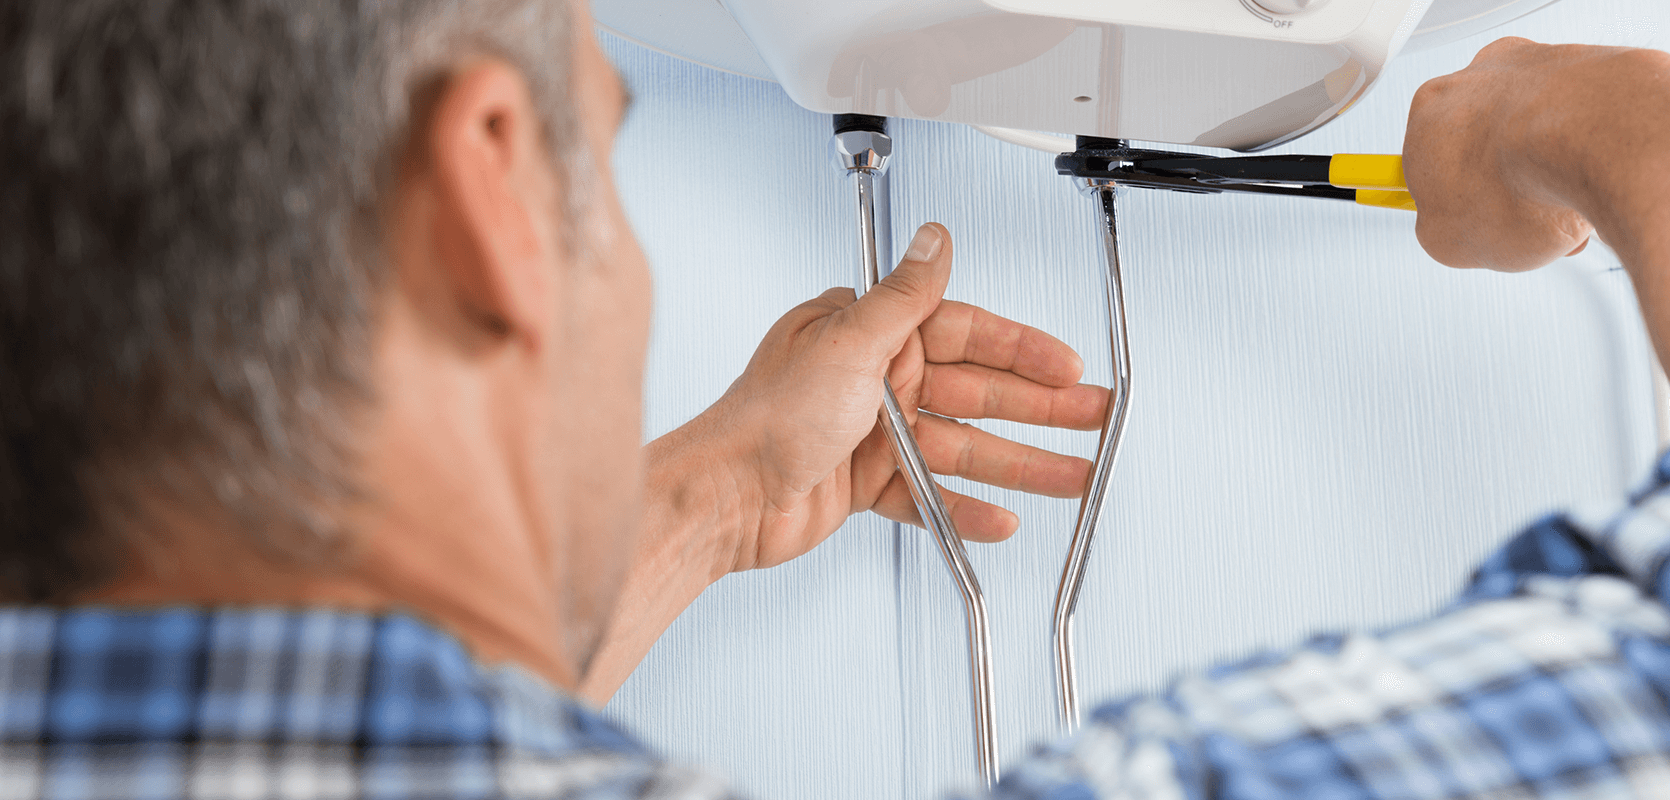 drain-cleaning-image